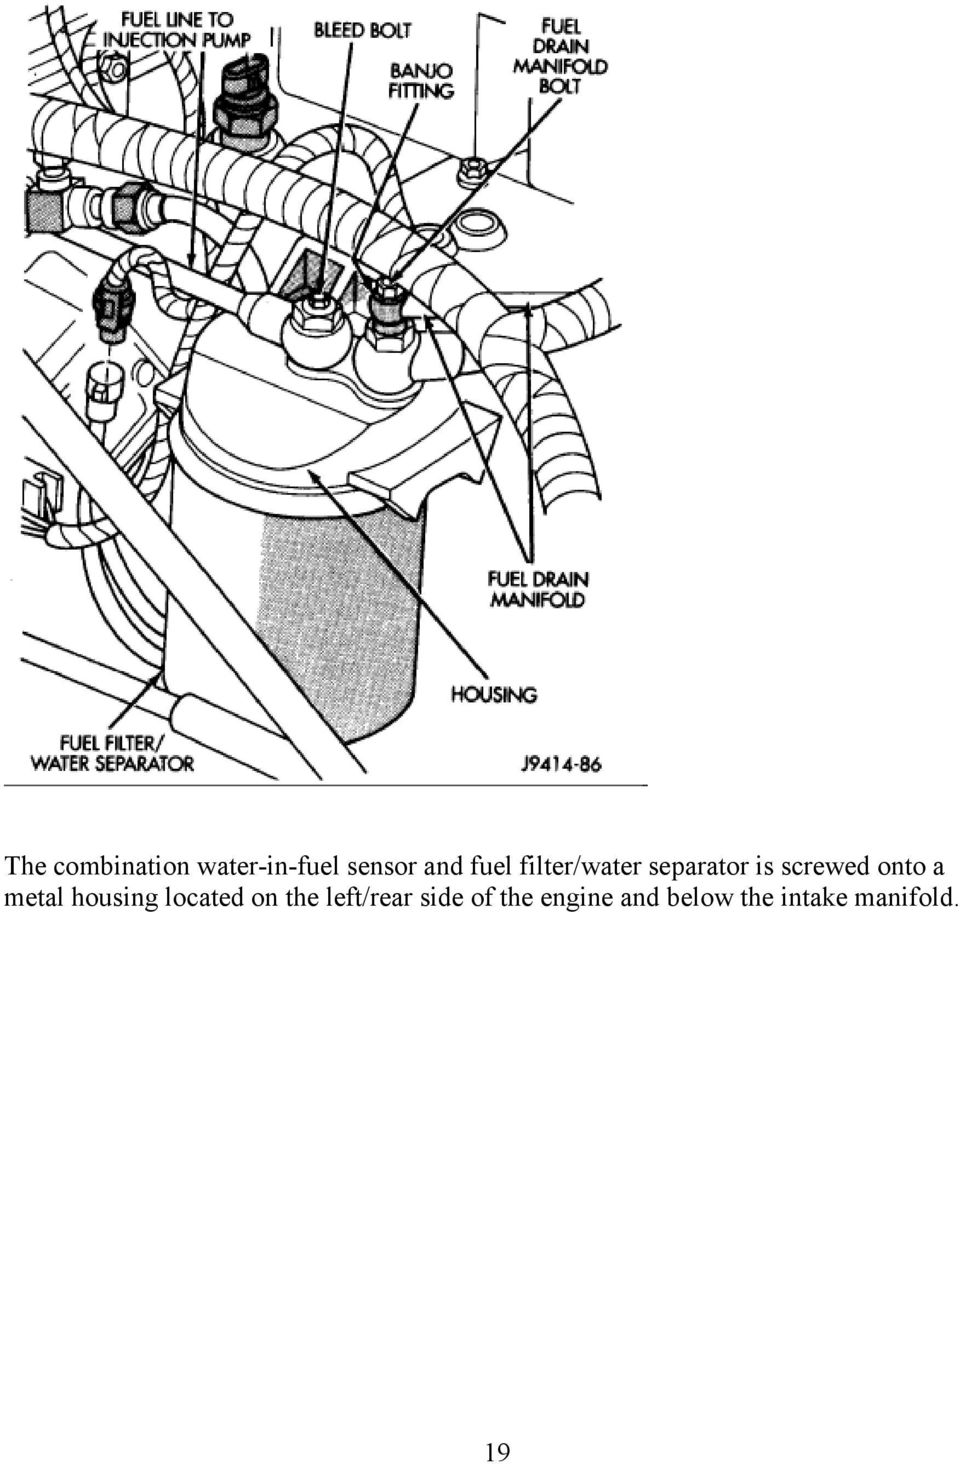 Pdf 86 Mustang Fuel Filter Location A Metal Housing Located On The Left Rear